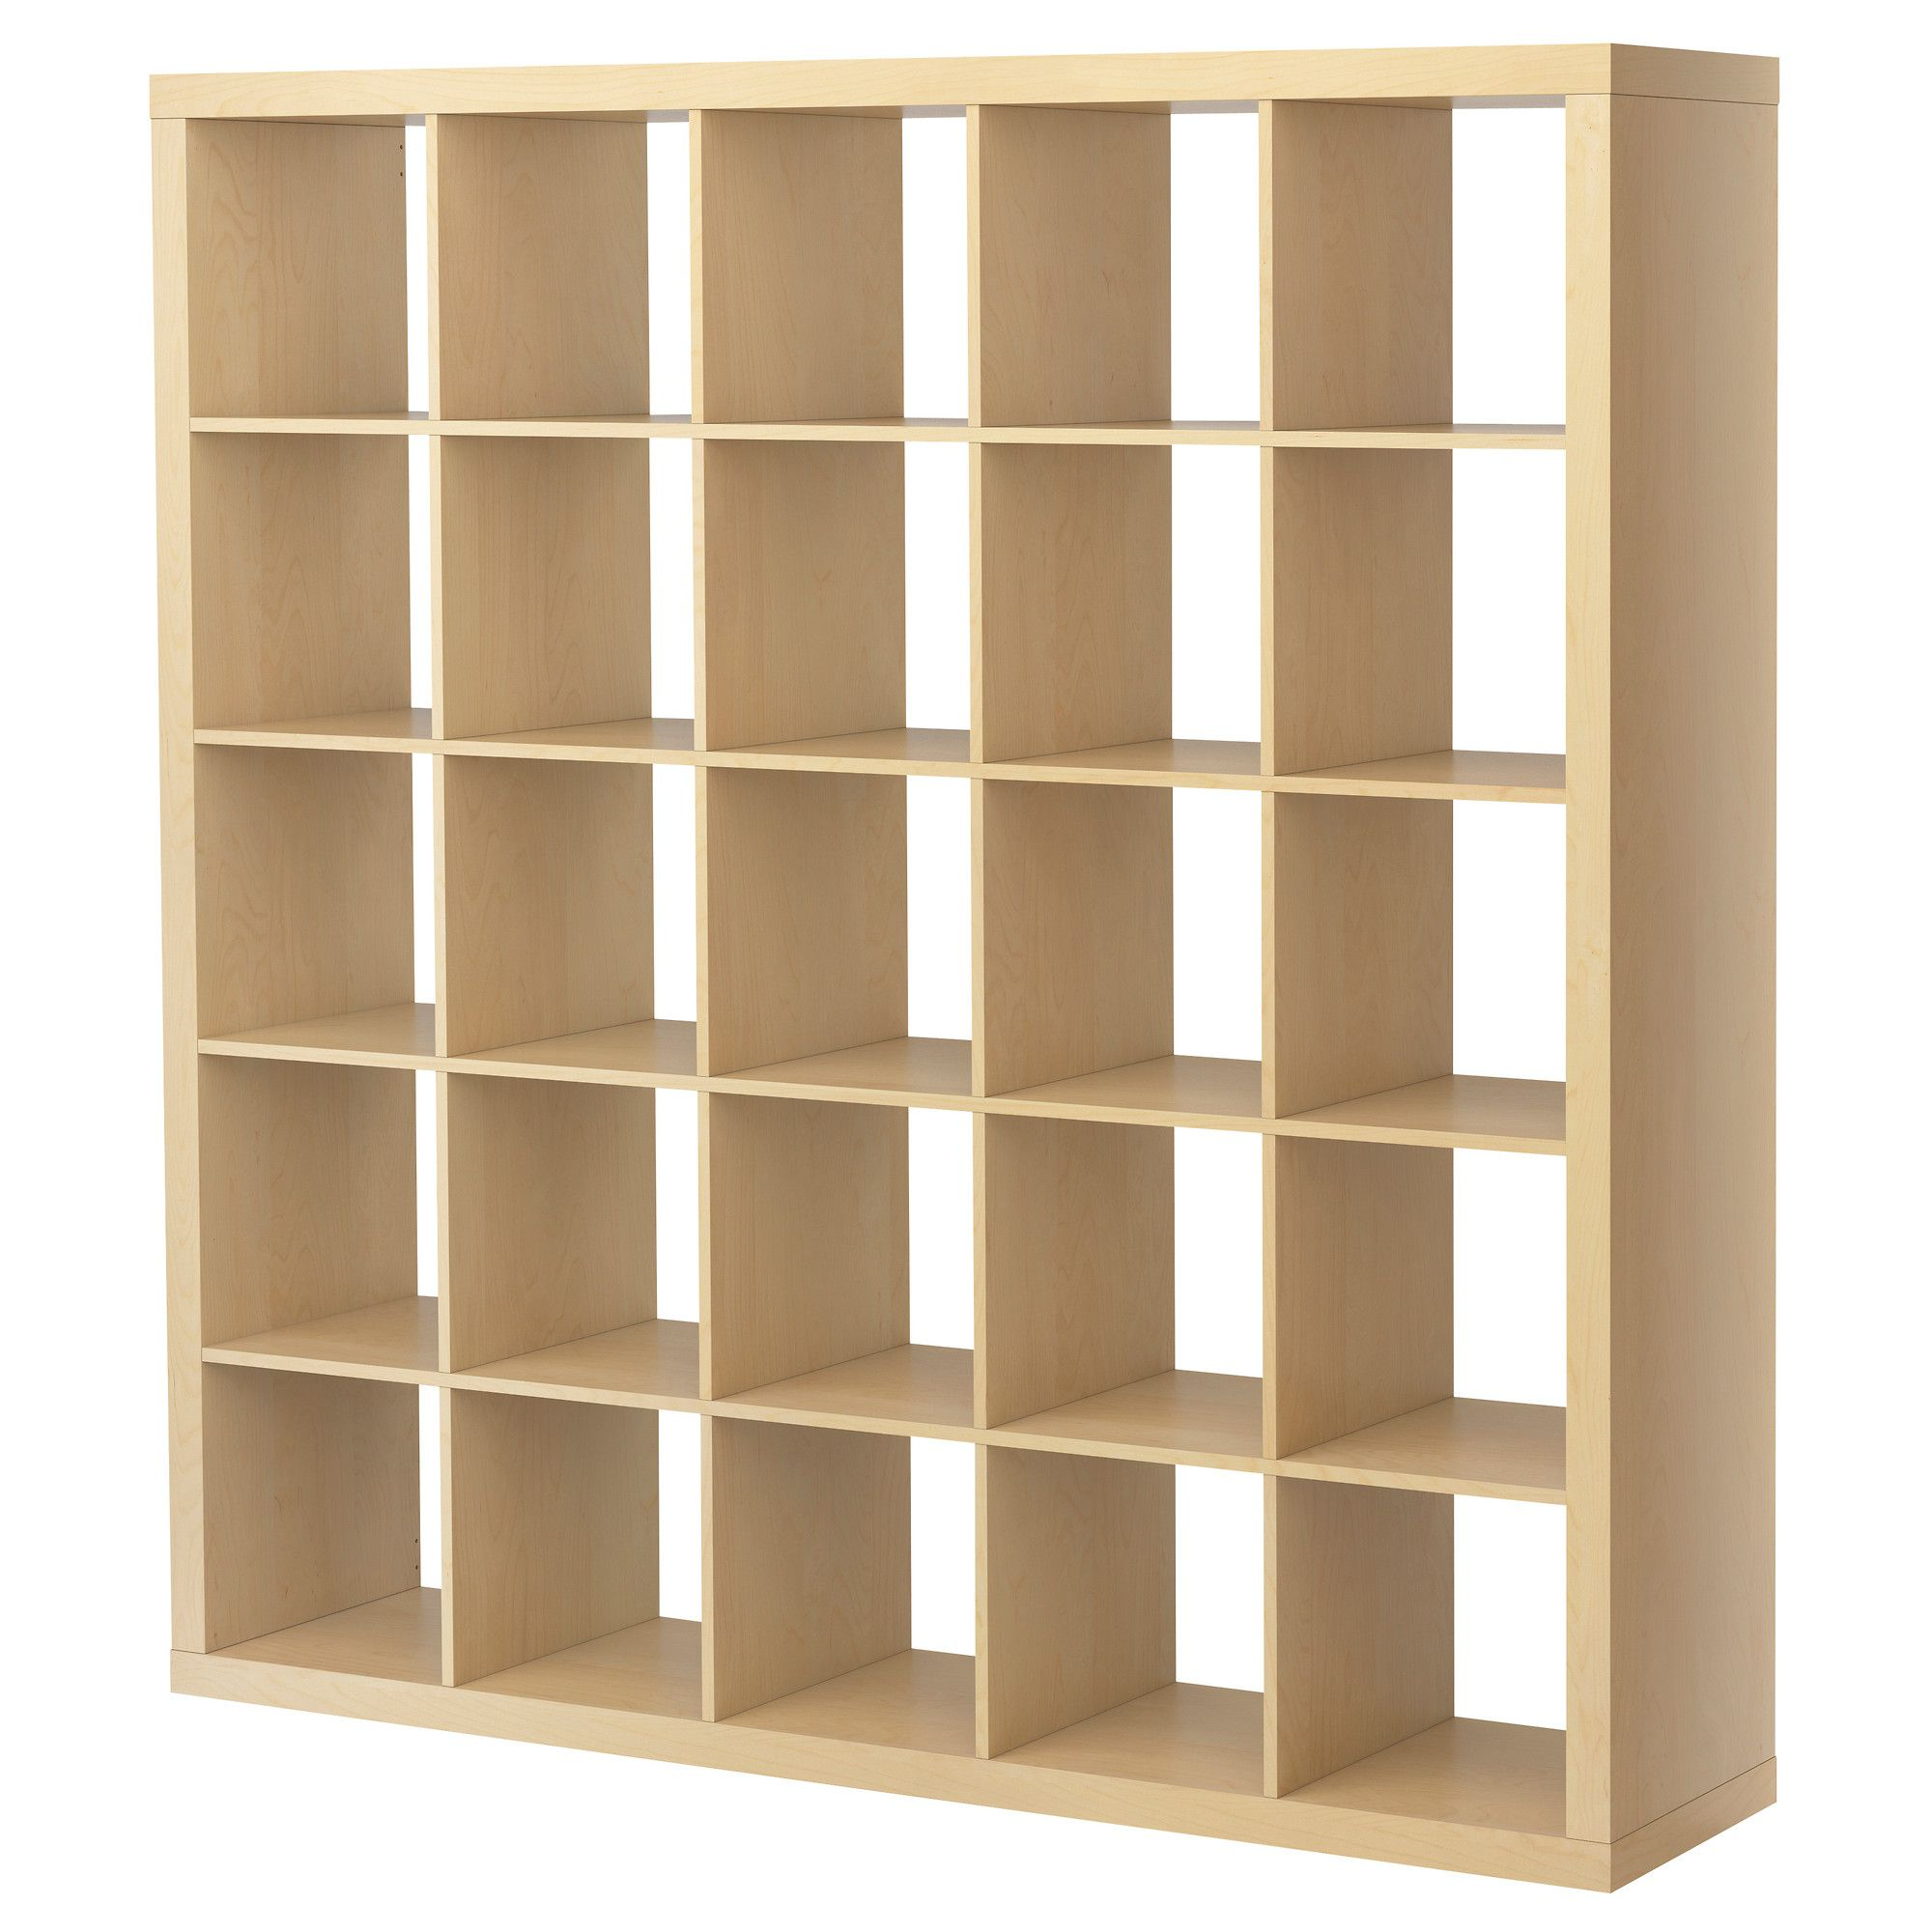 Excellent expedit shelving unit birch effect ikea pounds with etagere cd ikea